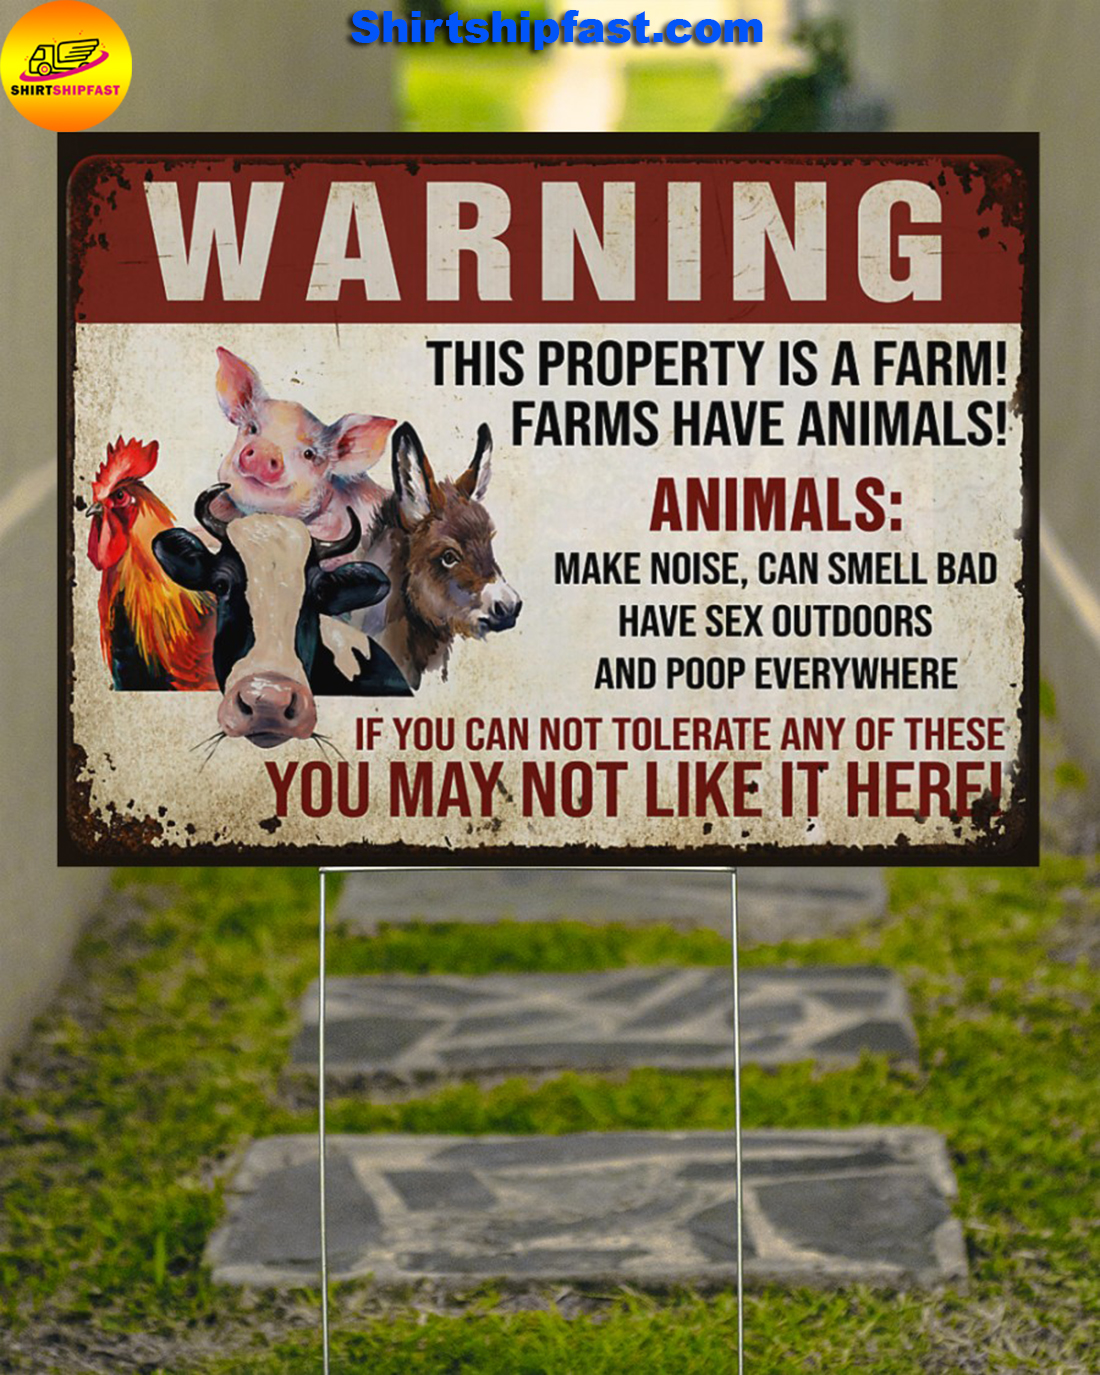 Animals Warninng this property is a farm yard signs - Picture 3